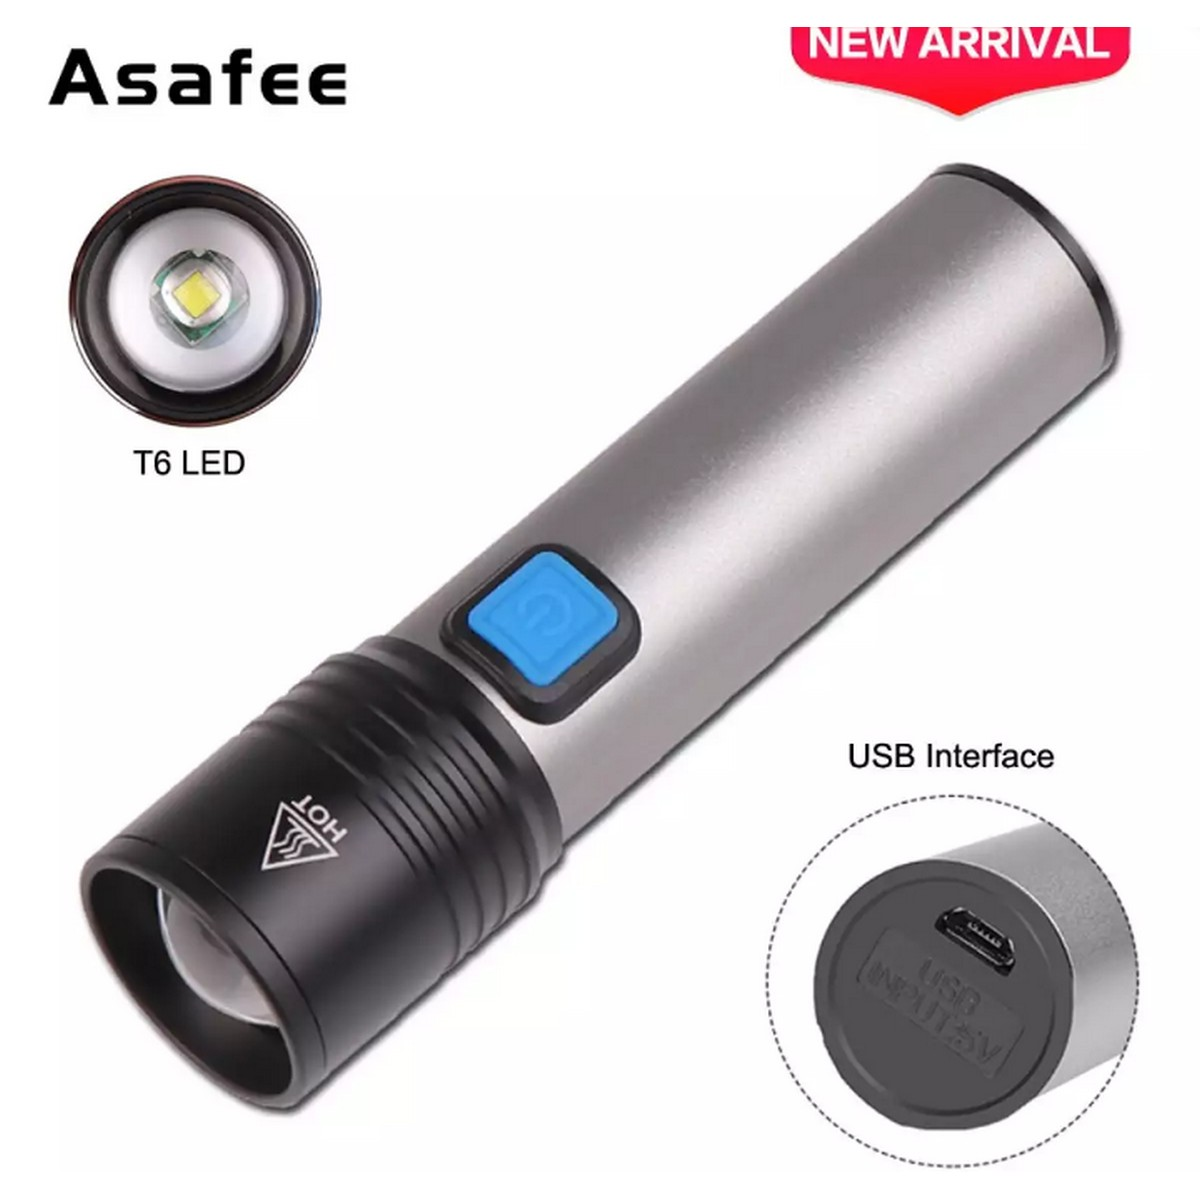 K31 Powerful T6 LED Flashlight Lamp Zoom Torch USB Rechargeable led Light Camping Lamp Flash Light Torch